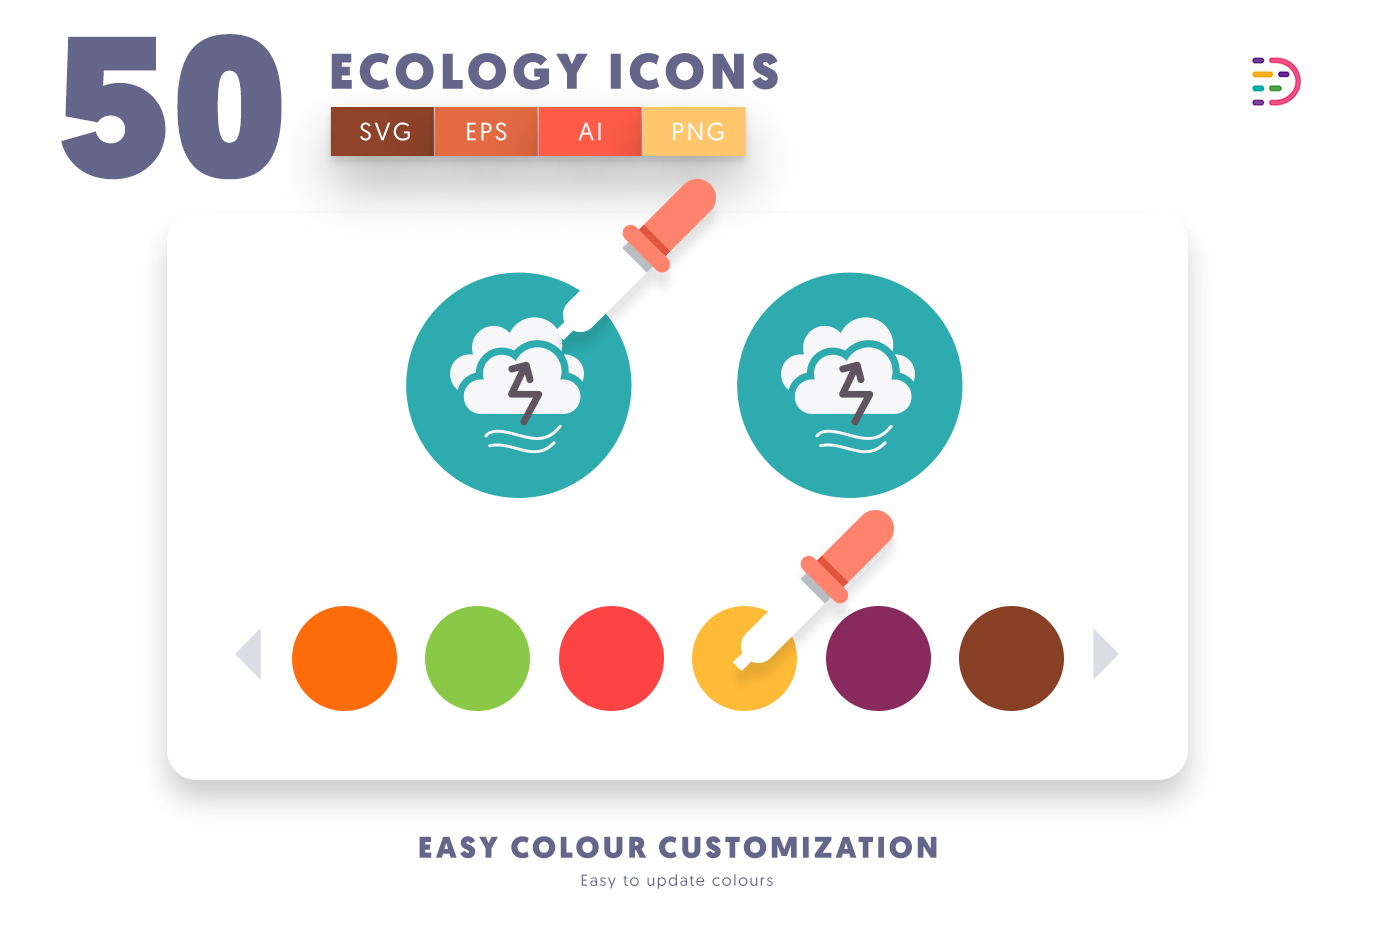 EPS, SVG, PNG full vector 50 Ecology Icons